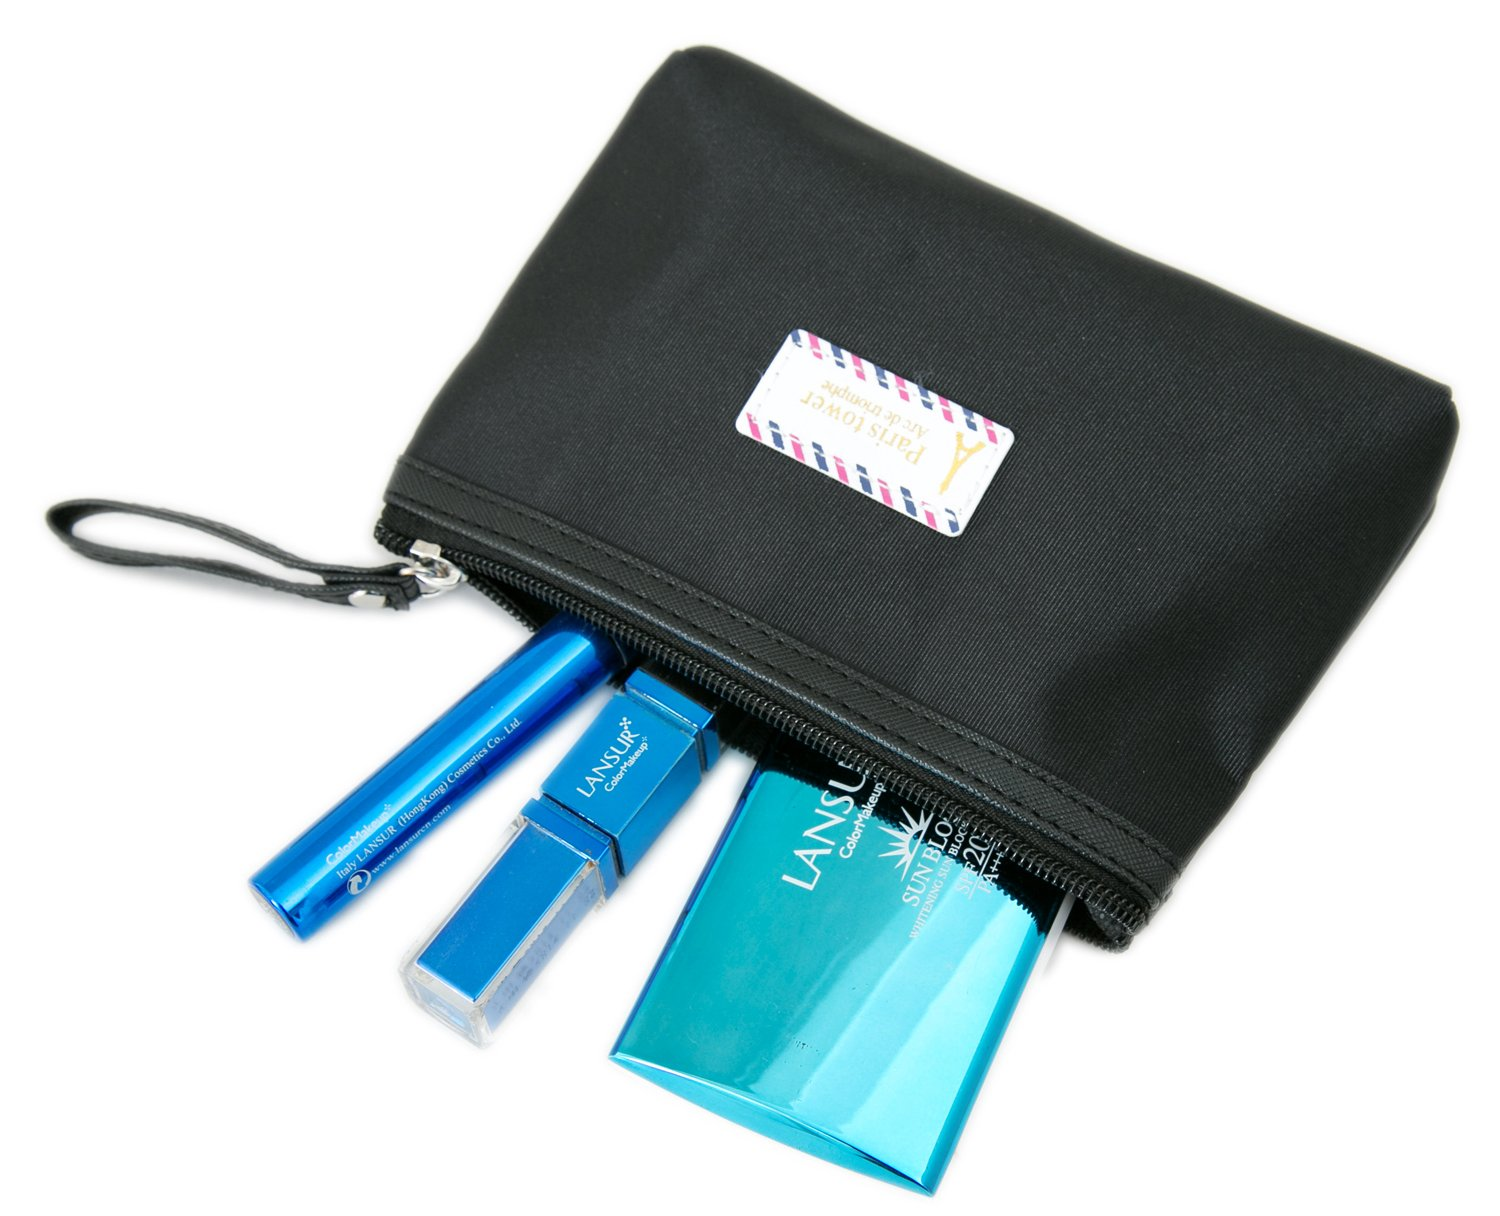 f6ffc84ce979 Amazon.com   Zhoma 3 Piece Waterproof Cosmetic Bag Set - Makeup Bags And Travel  Case - Black   Beauty